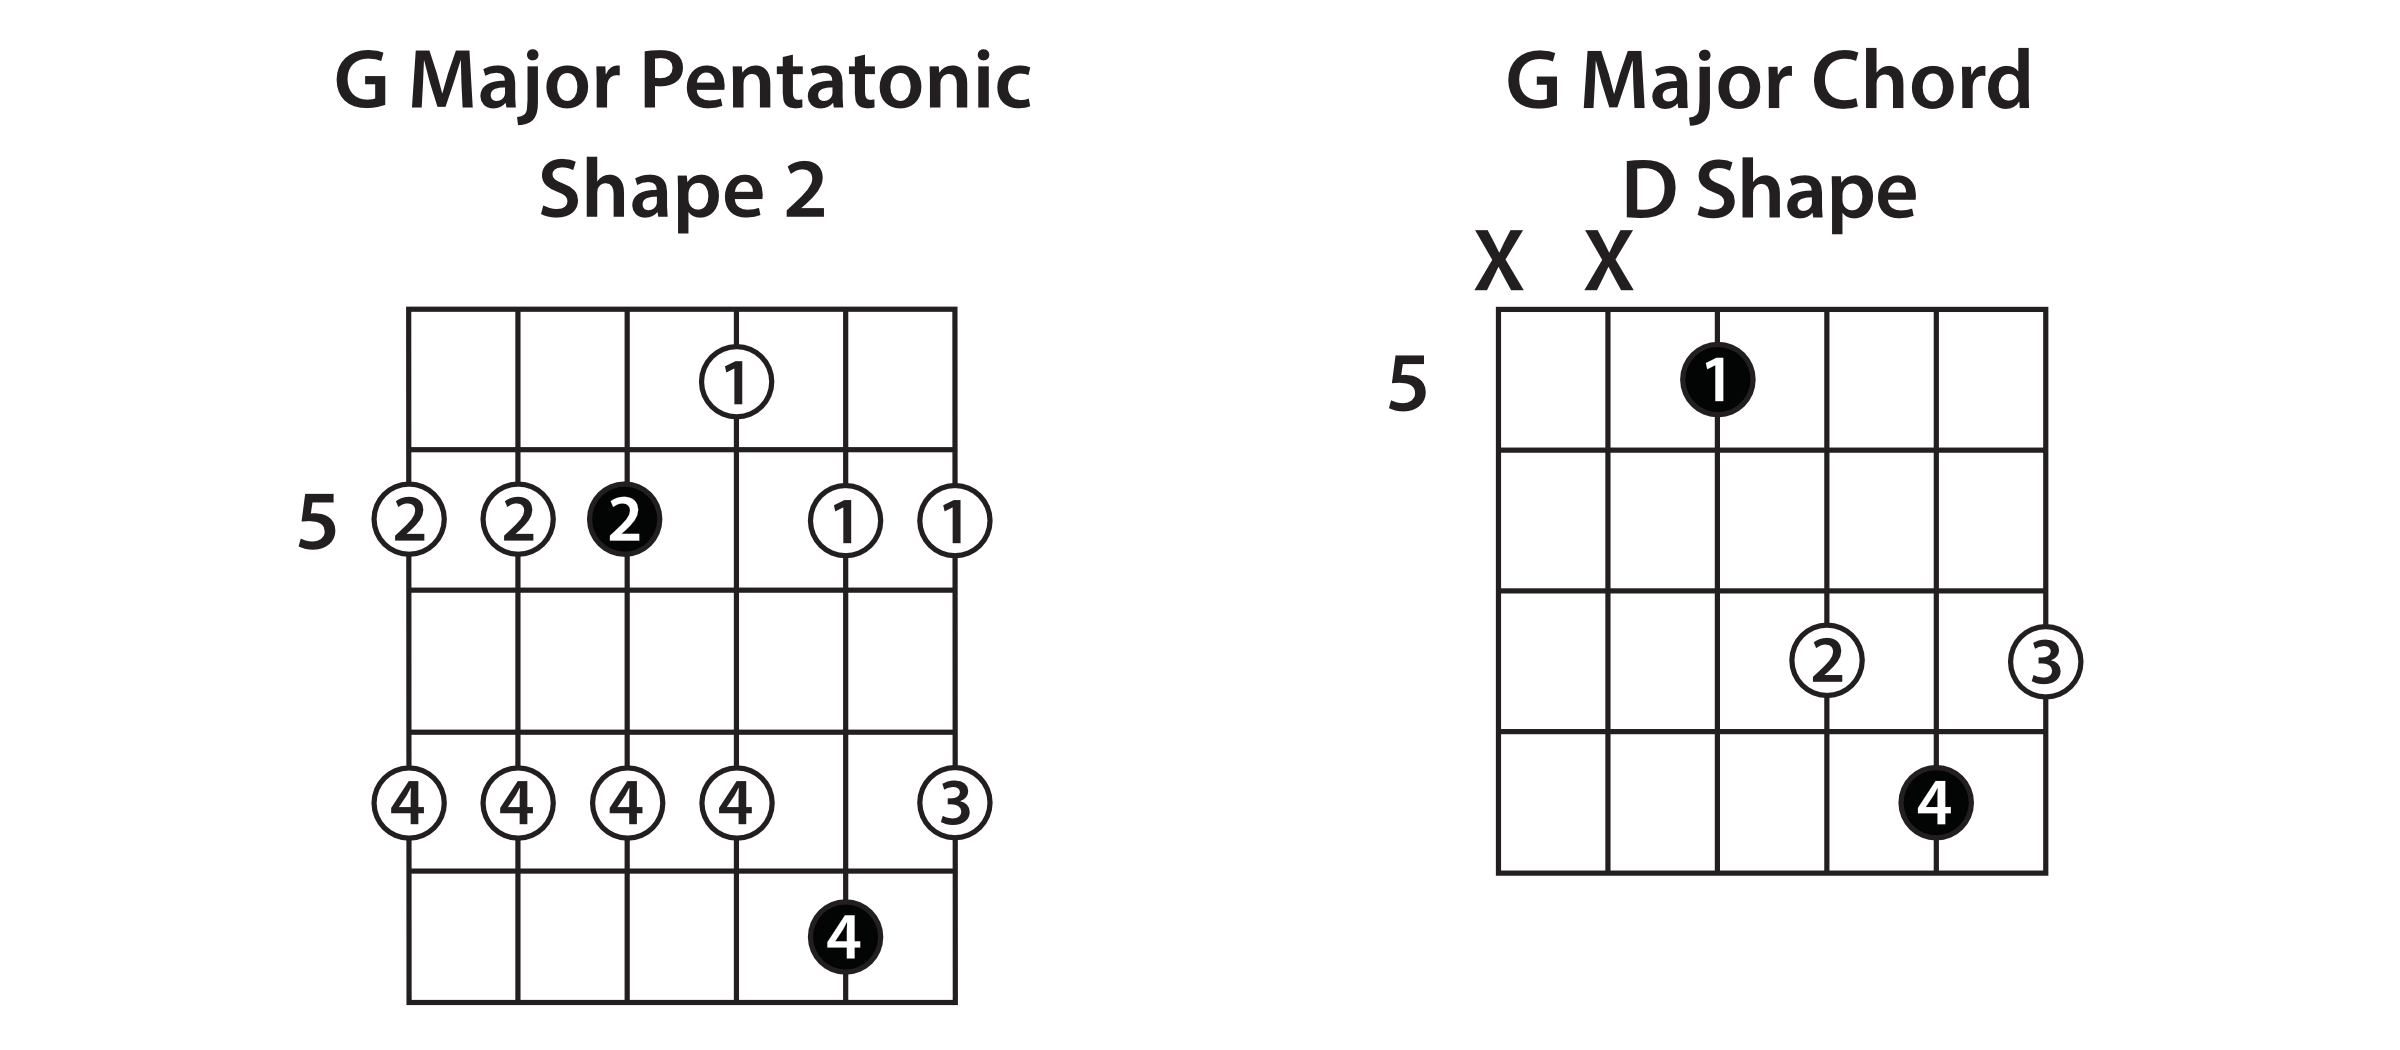 Major Pentatonic Shape 2